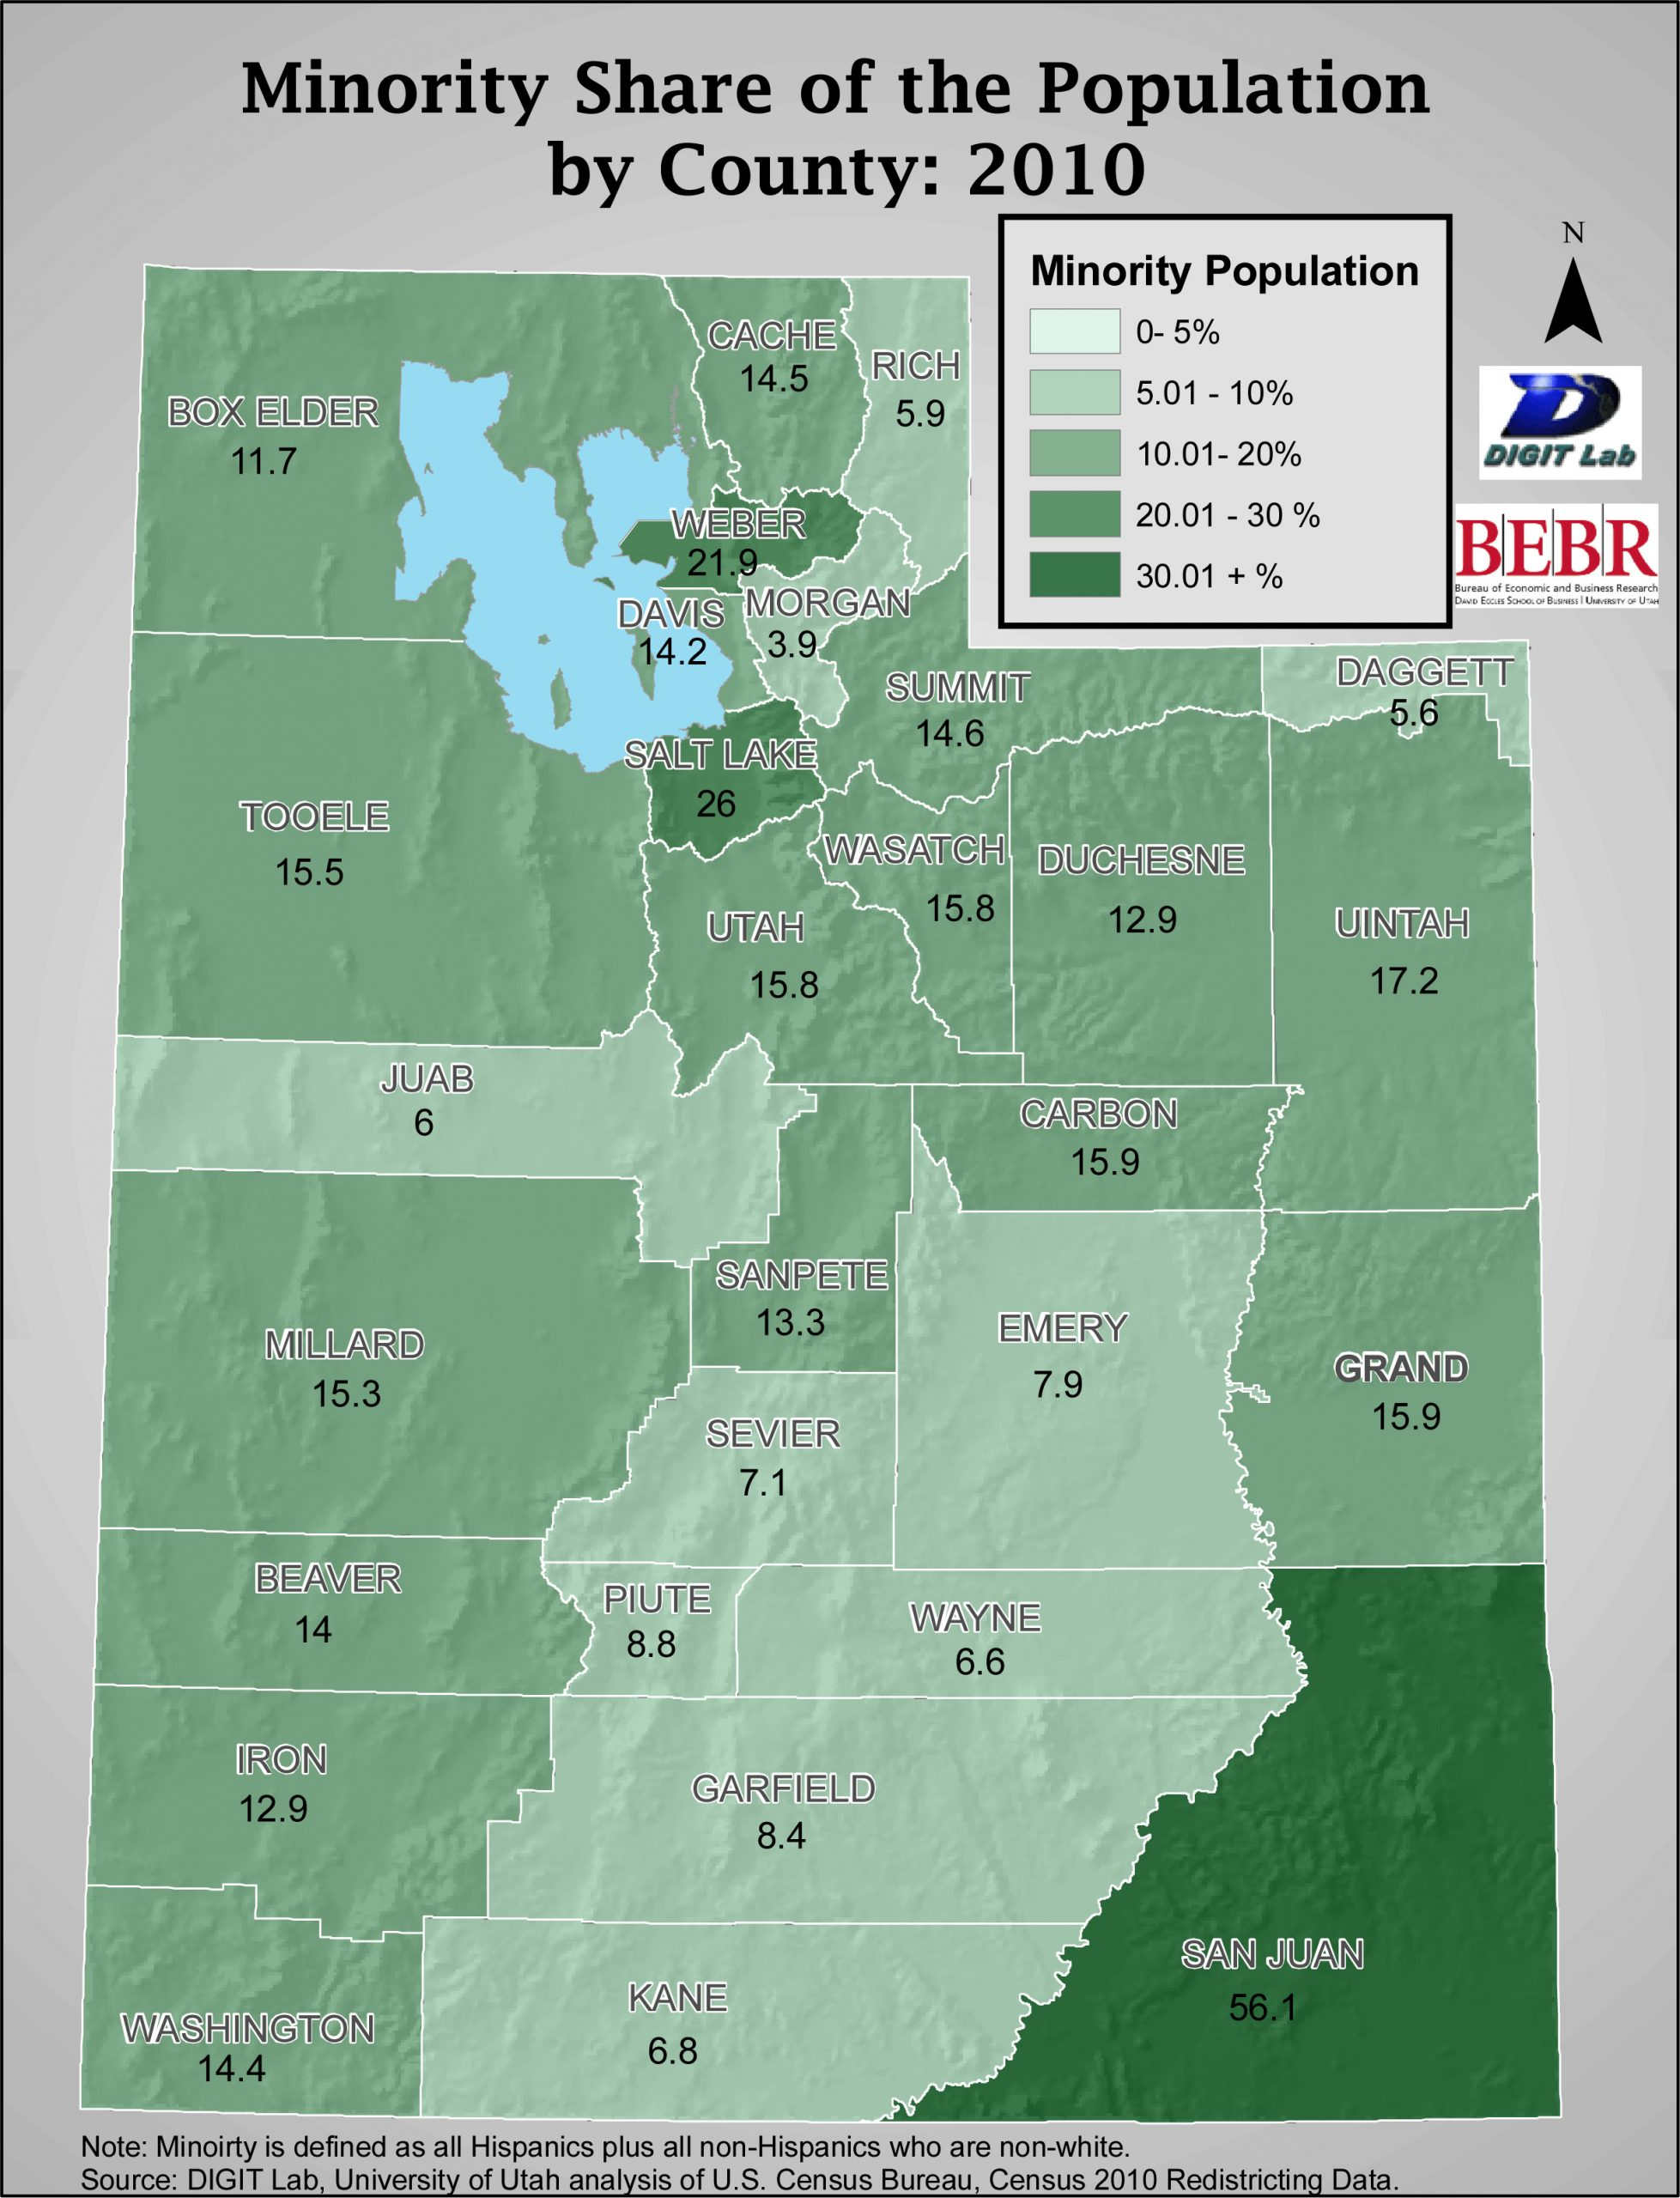 The University of Utah's Bureau of Economic and Business Research (BEBR) is closely analyzing census data from Utah because of its potential to reshape the state's political boundaries. This map shows what percentage of each county's population in 2010 is shared by minorities (defined as Hispanics and non-whites). The analysis has found that minorities accounted for 40 percent of the overall population increase for Utah from 2000 to 2010, and the state's minority population rose by 213,262 in that time period--a 65 percent increase.